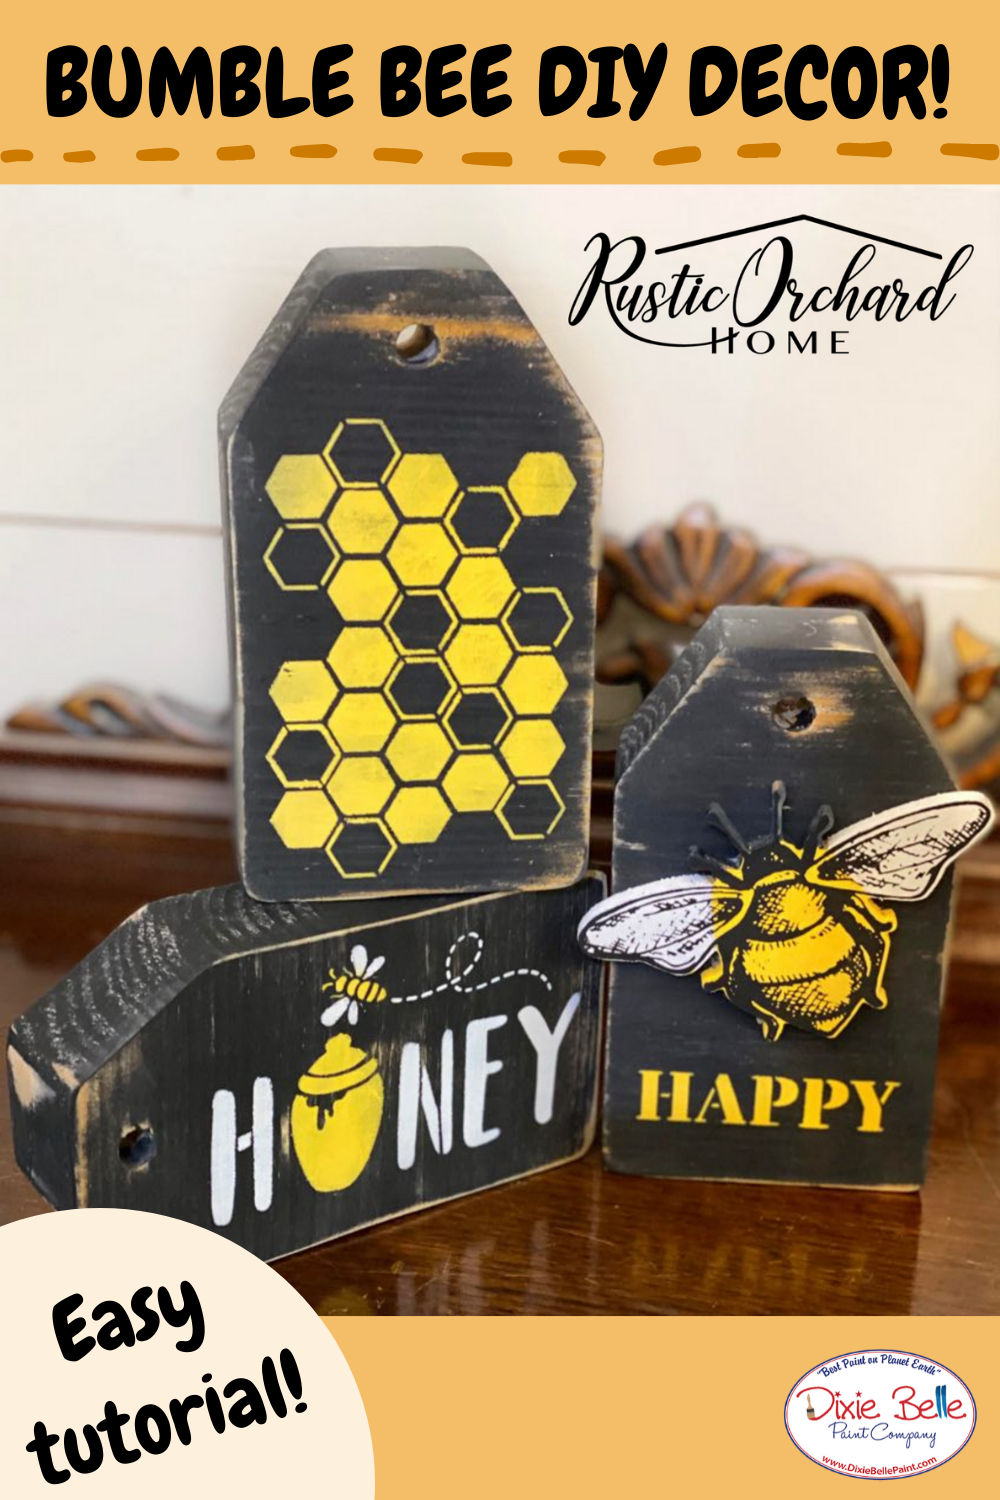 diy-bumble-bee-decor